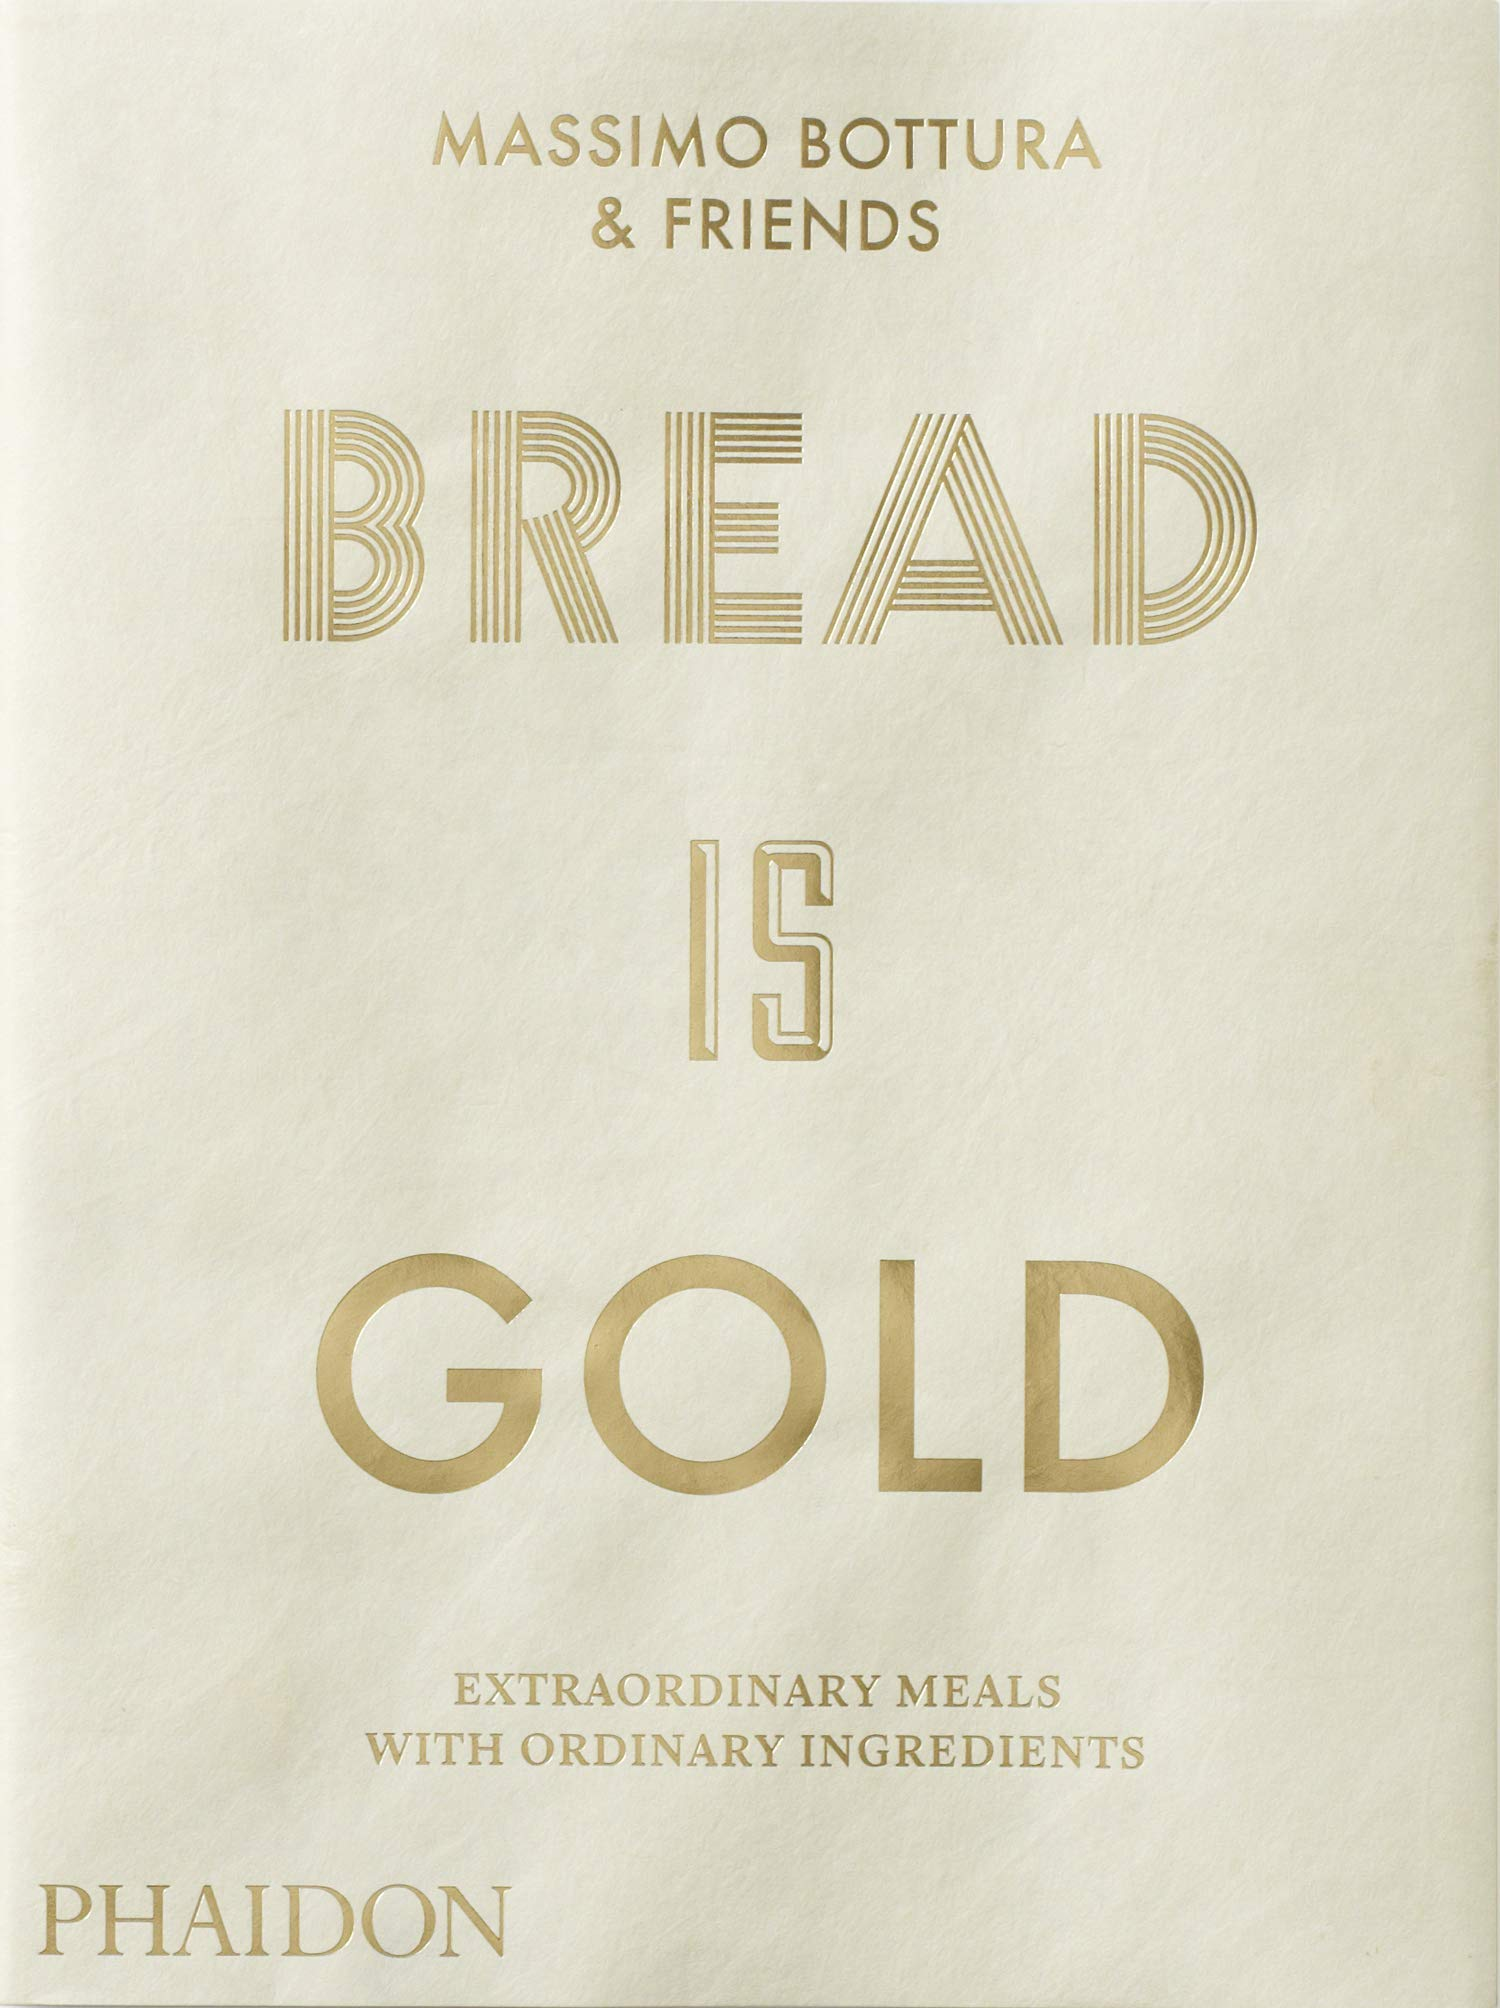 Bread is gold: HOW CHEFS TURN ORDINARY INGREDIENTS INTO ...